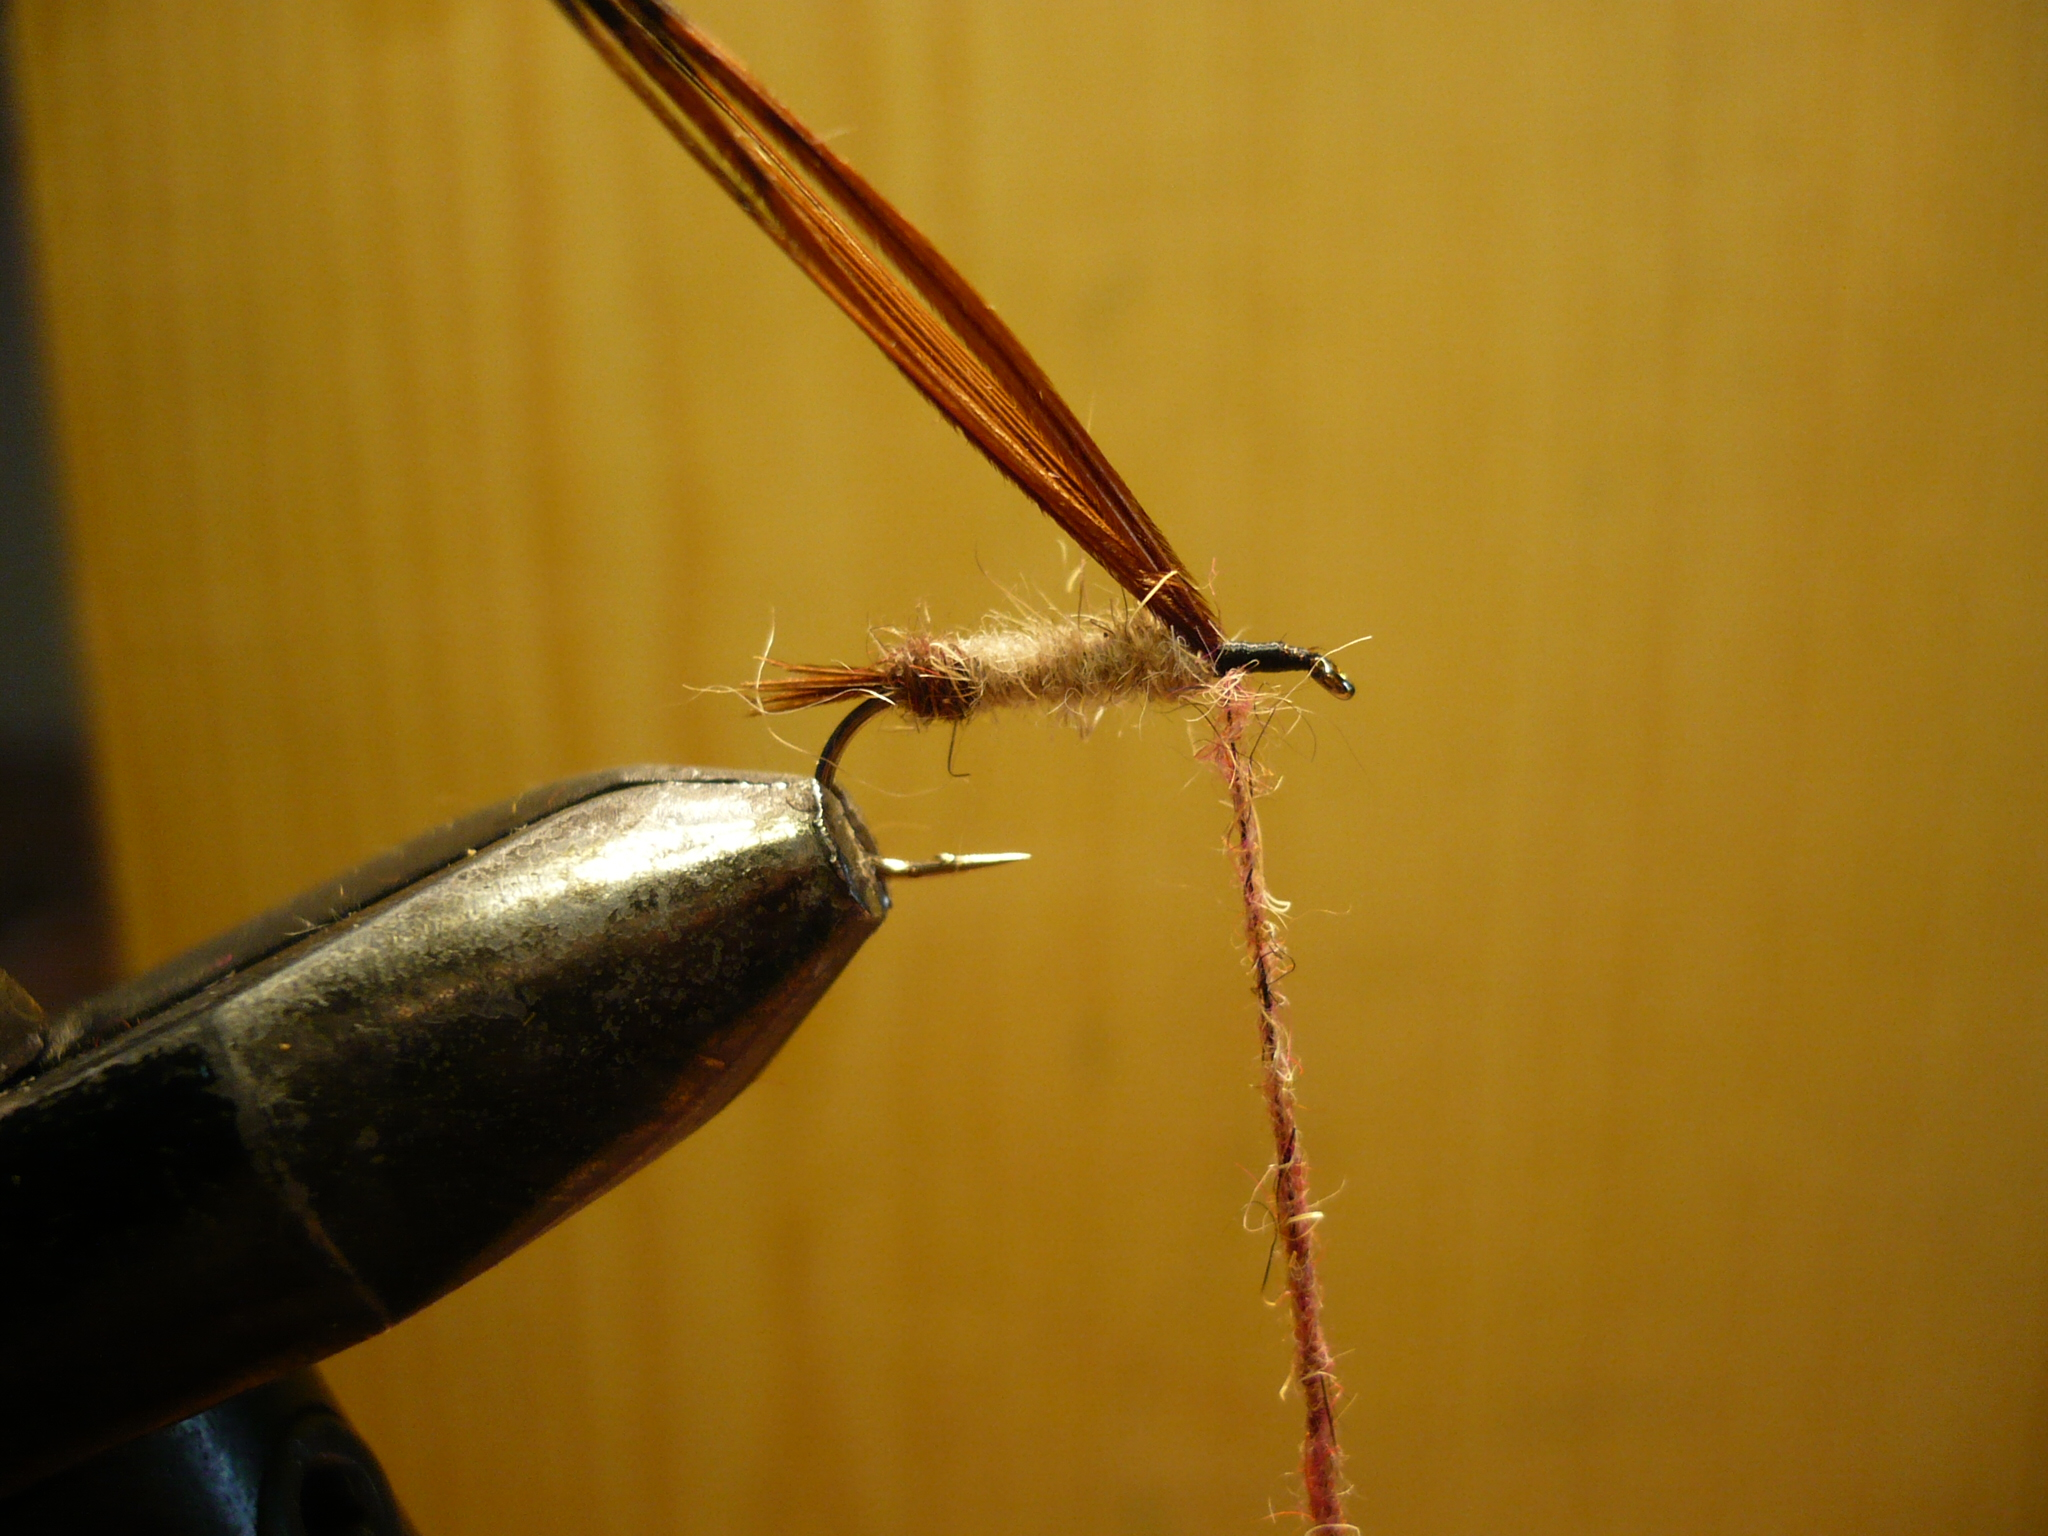 MDM mouche de may nymphe flytying tying fly eclosion